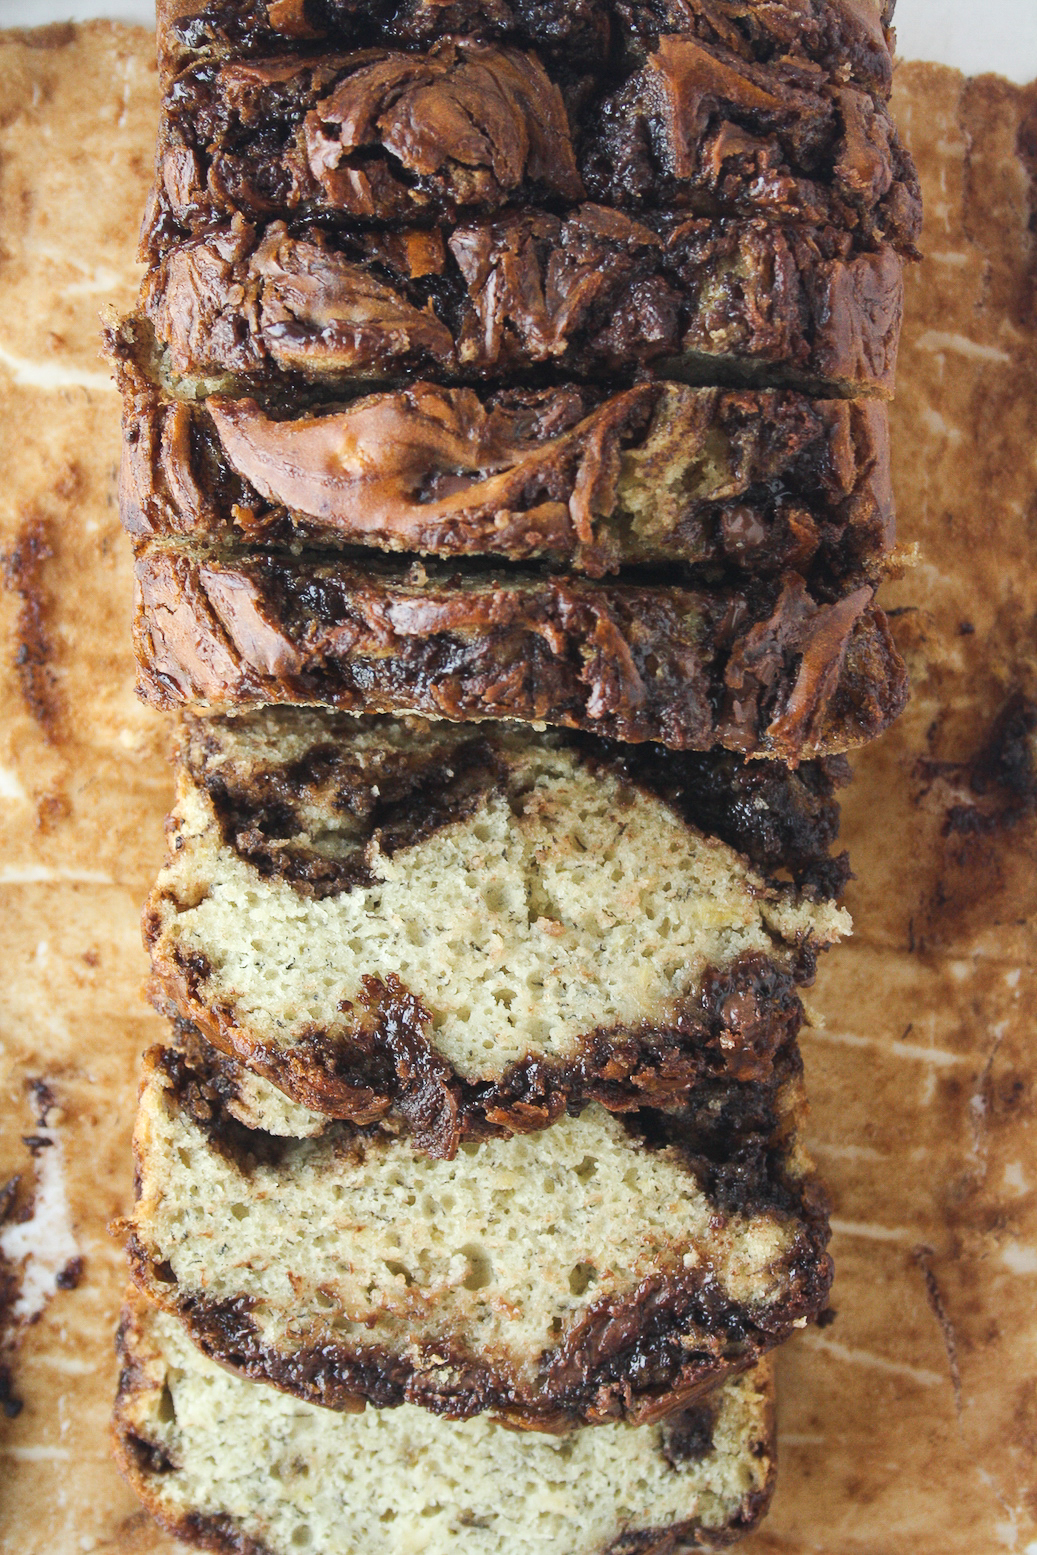 Moist and tender banana bread with lots of Nutella swirled through it!